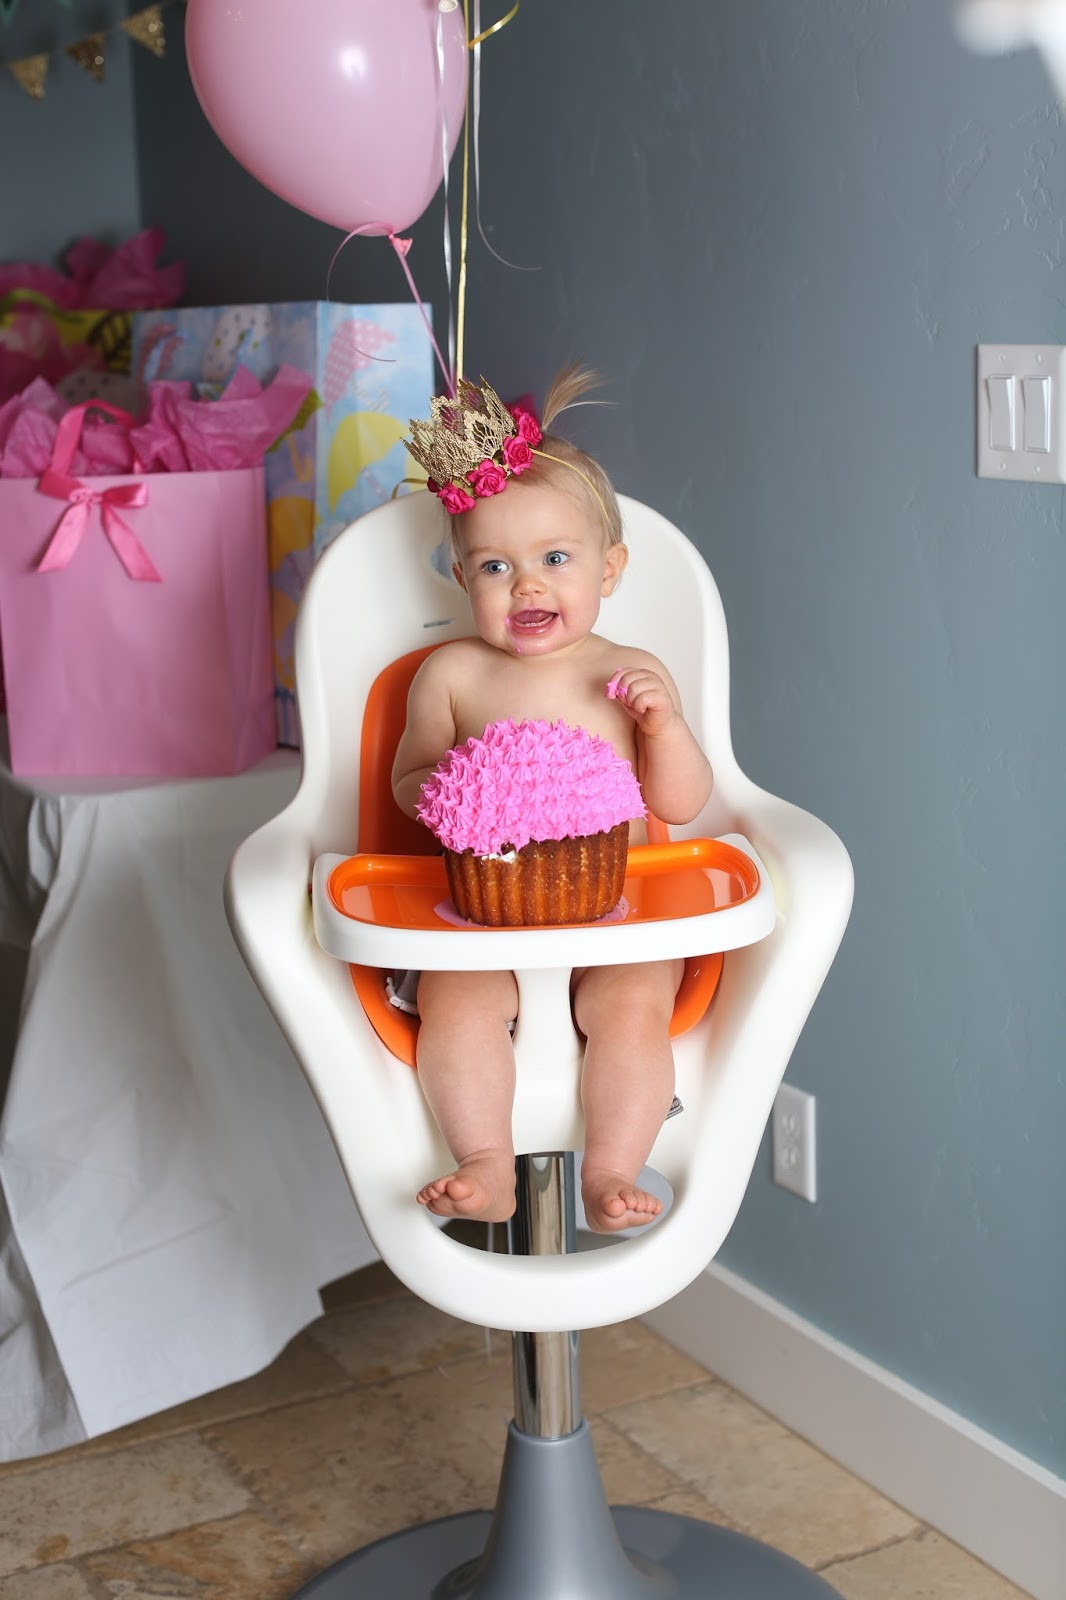 Boon flair high chair pink - Sitting In Her New Boon Flair High Chair